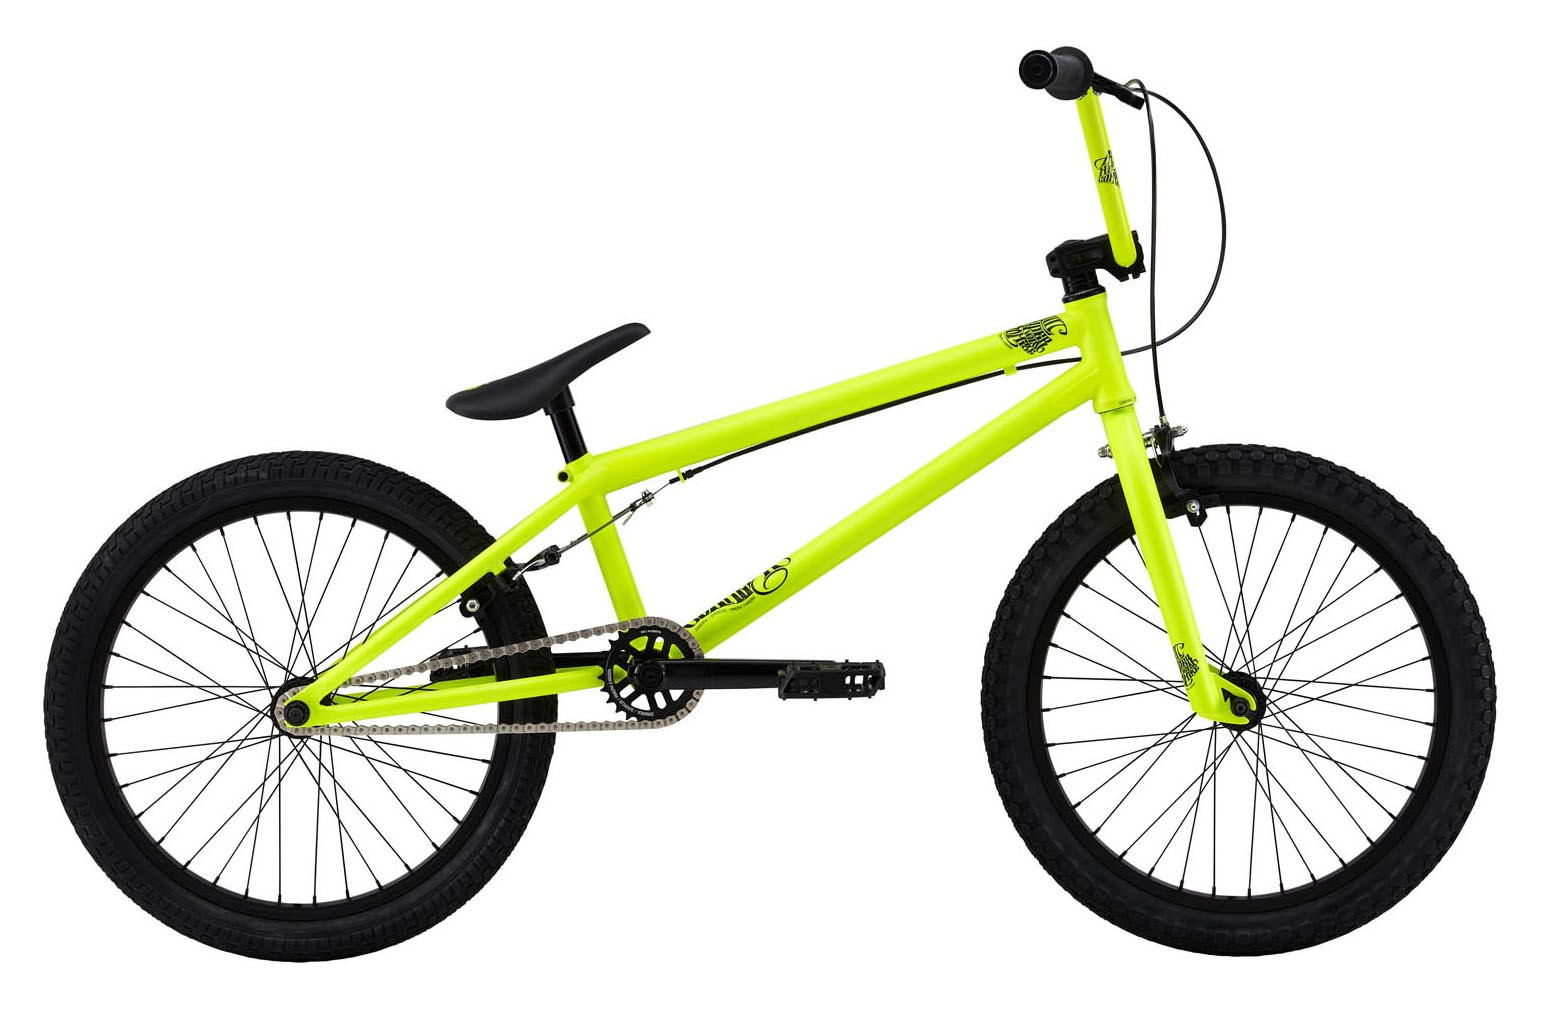 ВМХ велосипед Commencal Absolut BMX 1 (2013)